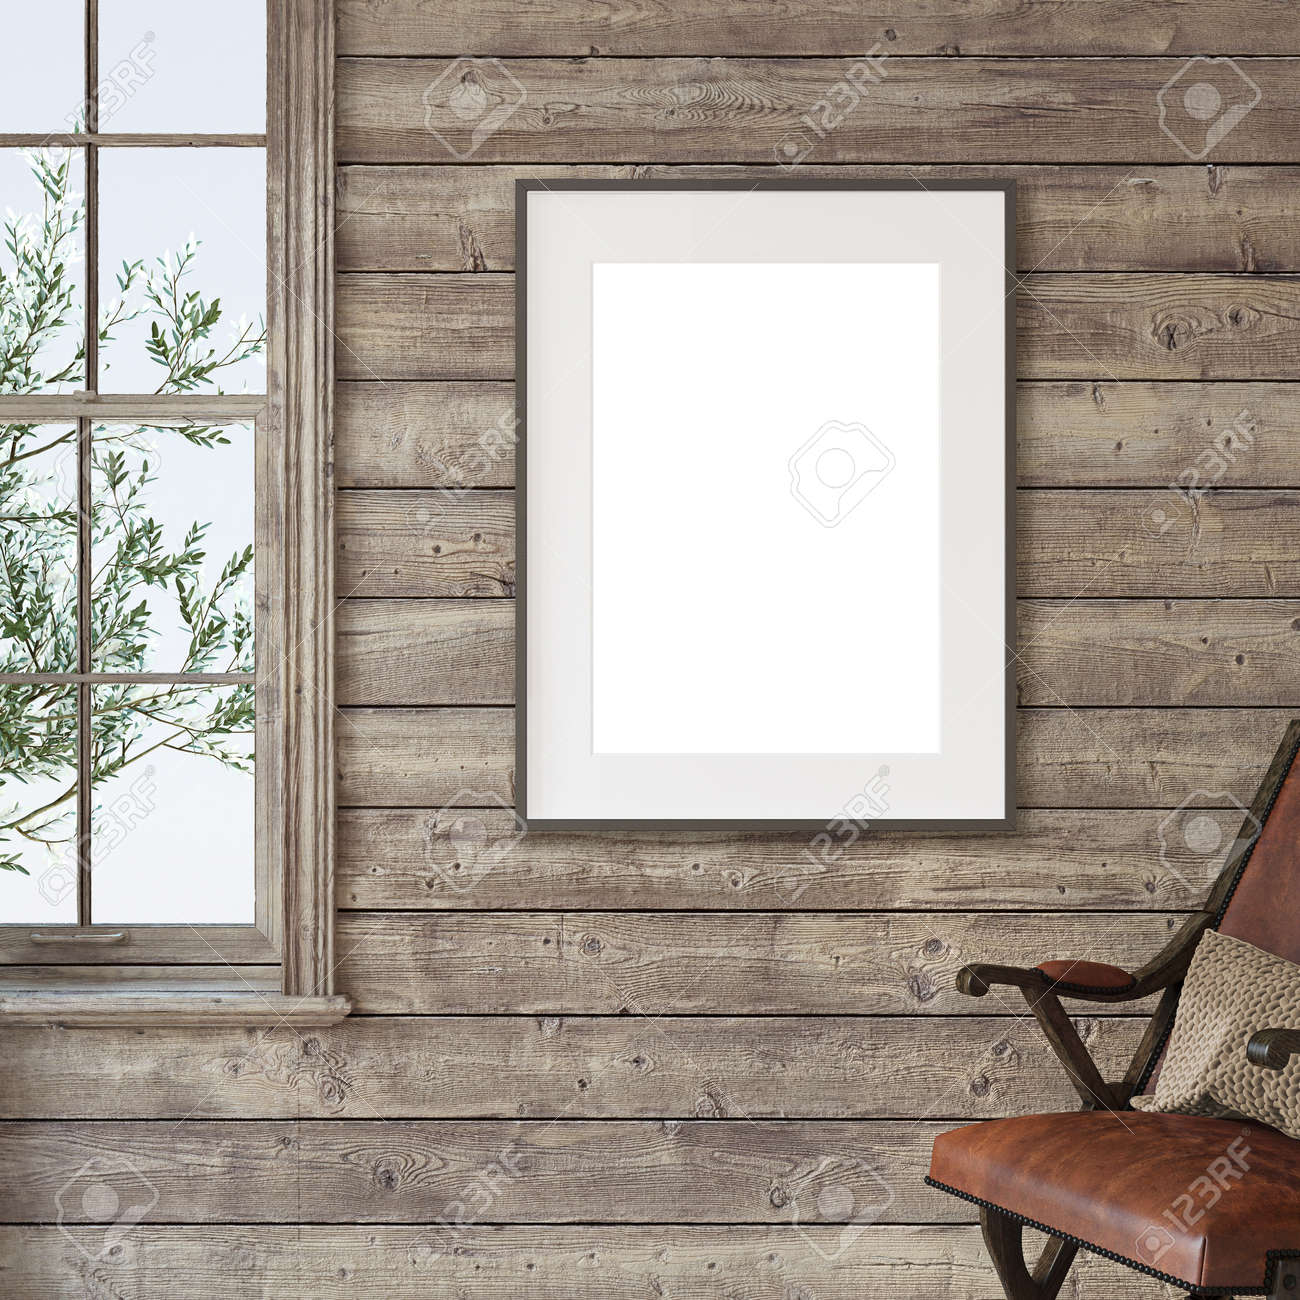 Ranch house. Interior and frame mockup. 3d render. - 163278992